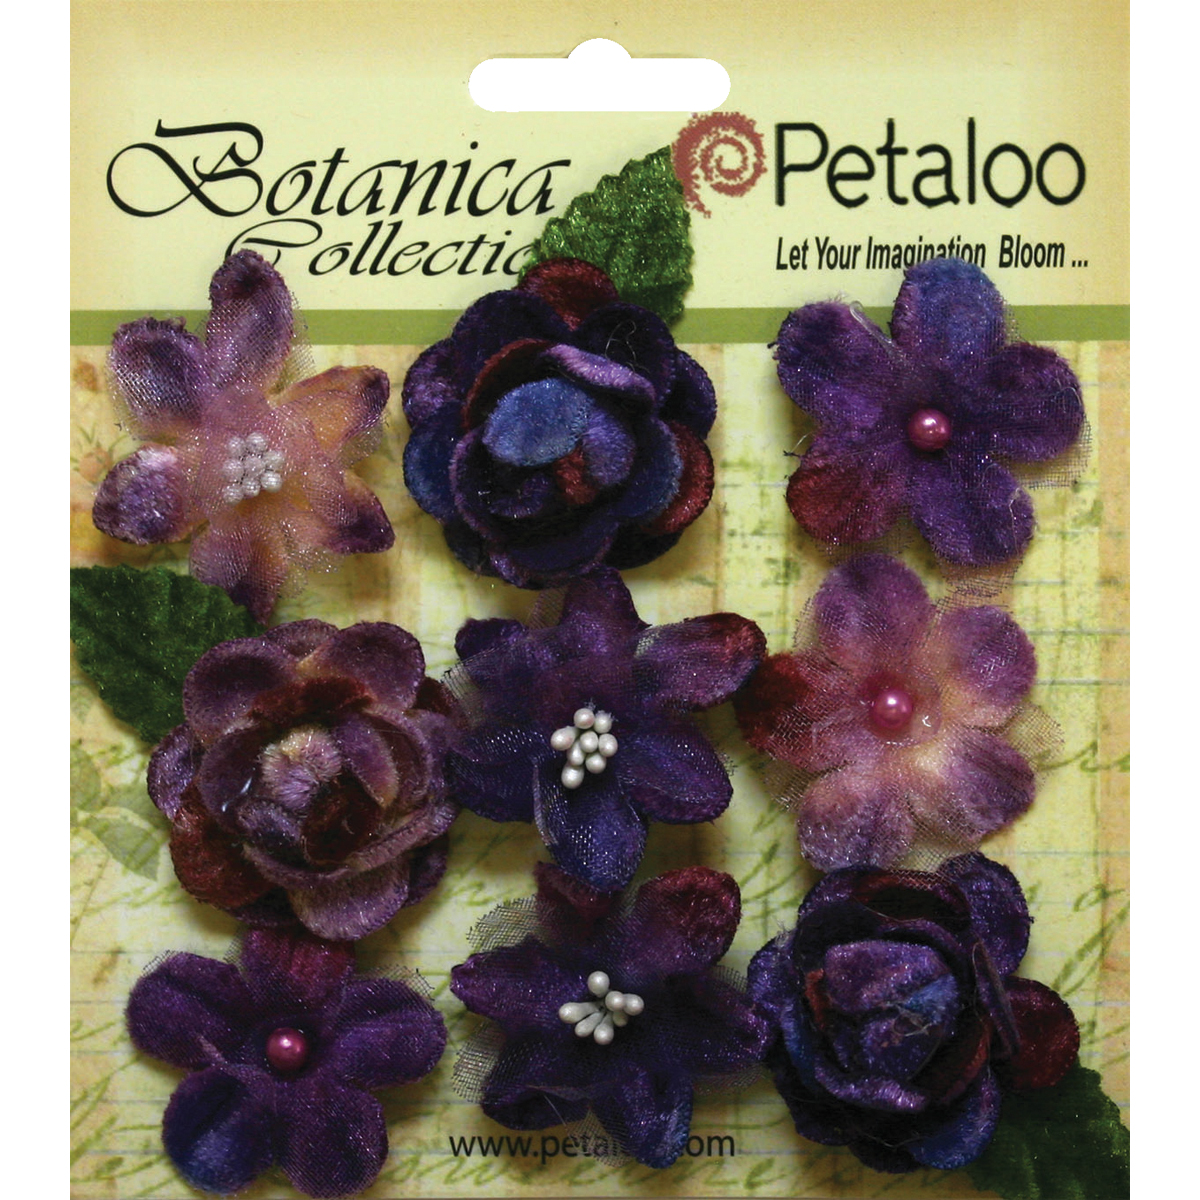 "Botanica Vintage Velvet Mini Flowers 1"" - 1.5"" 9/Pkg-Purple"